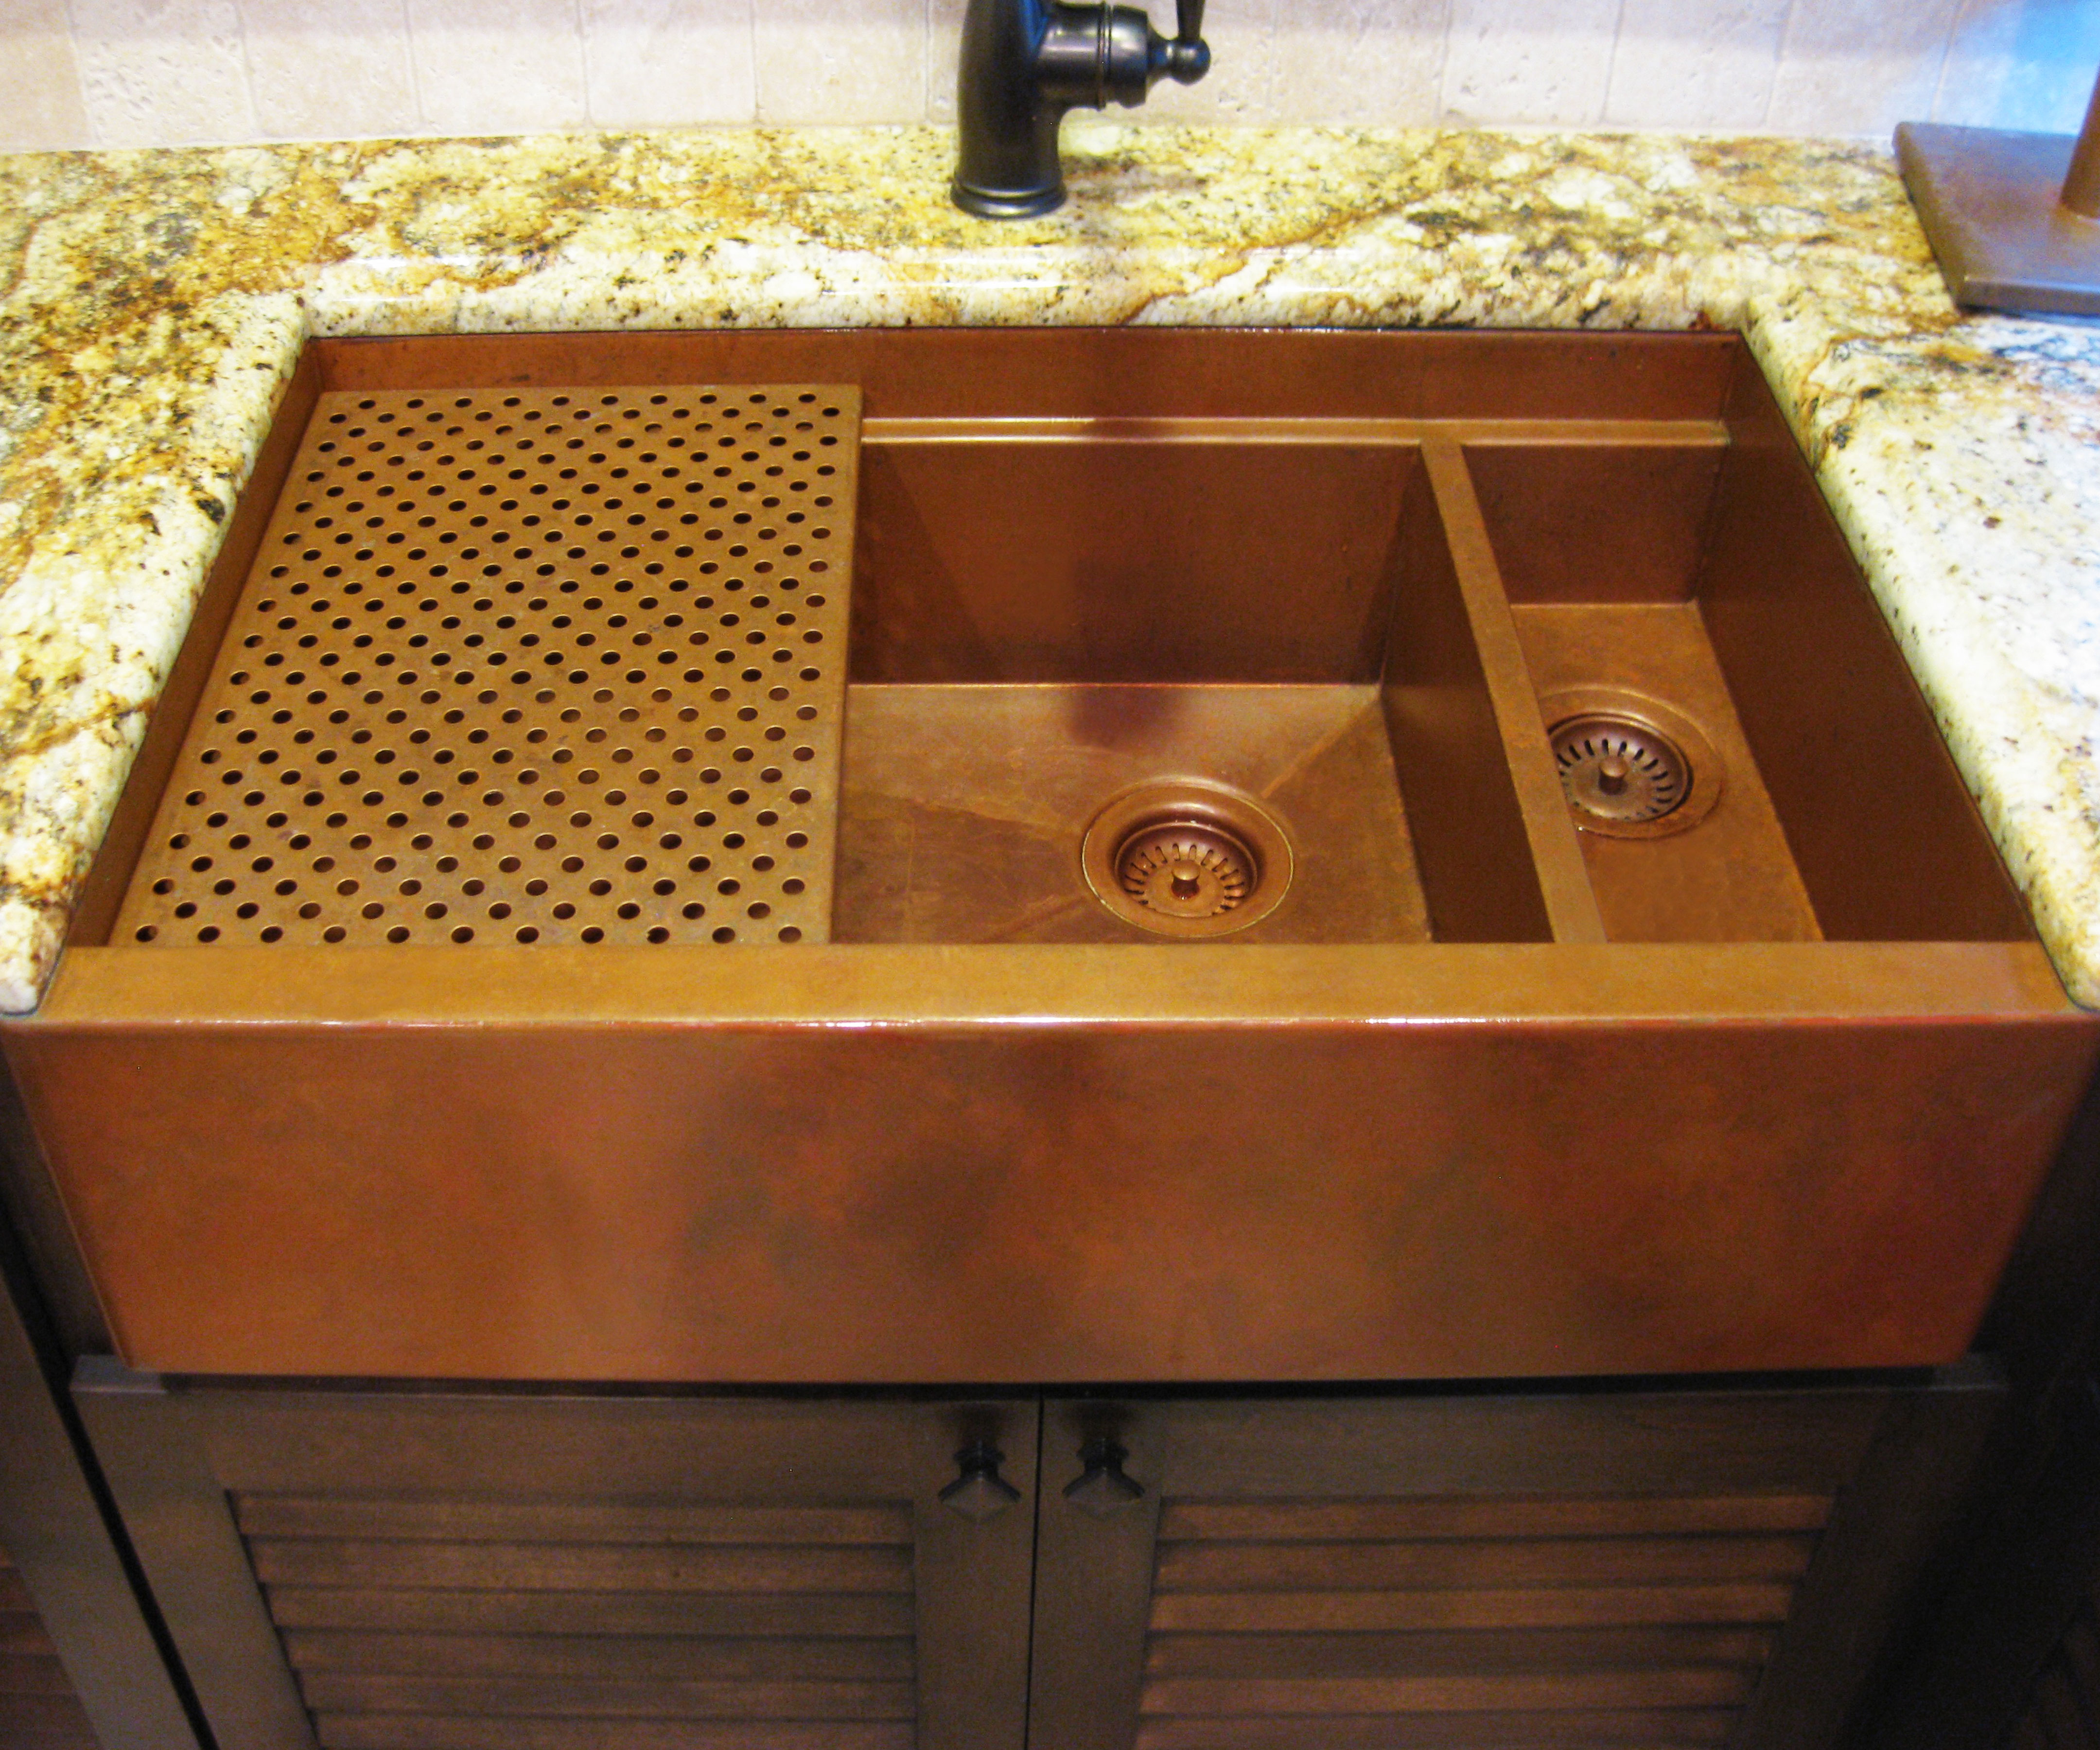 trimmed with hammered countertop copper scalloped hand and pin